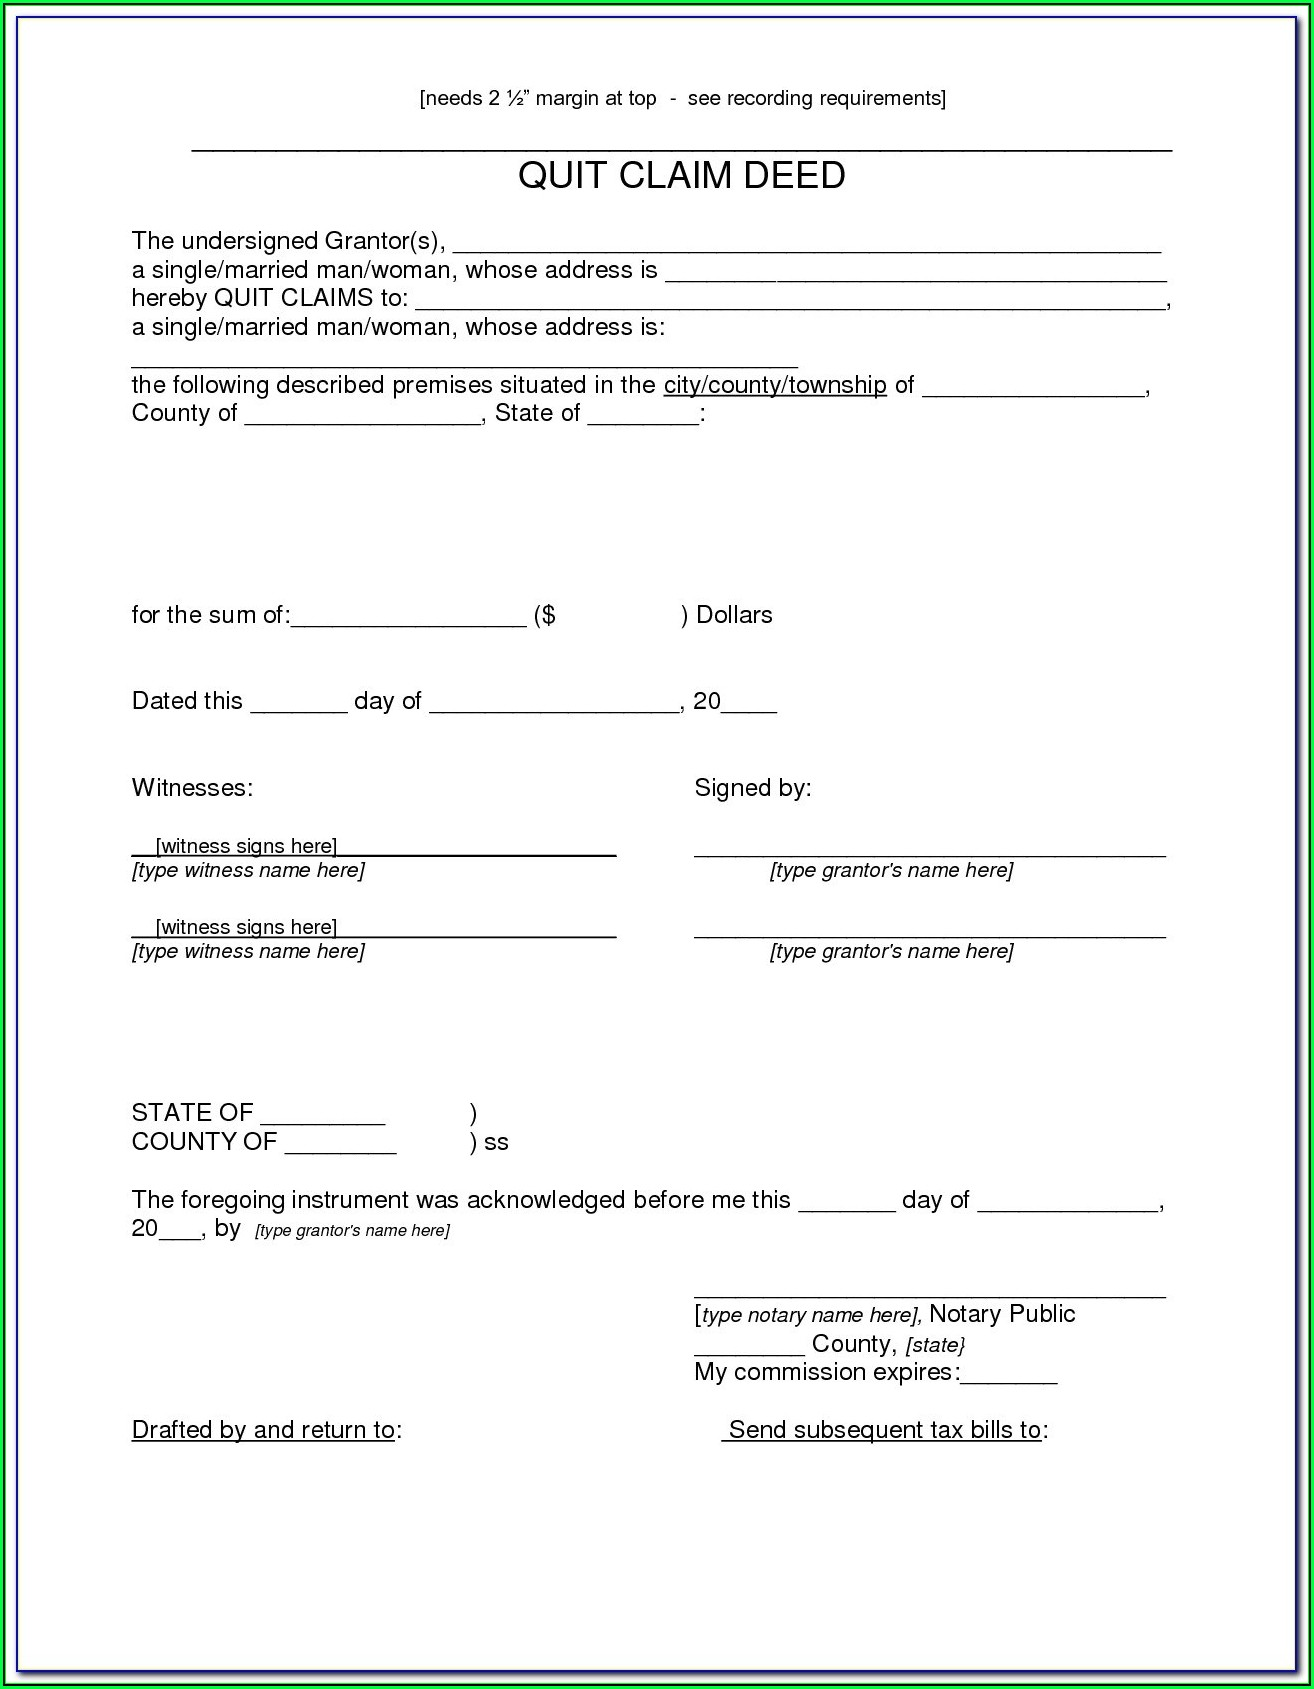 How To Fill Out Quit Claim Deed Form Nevada